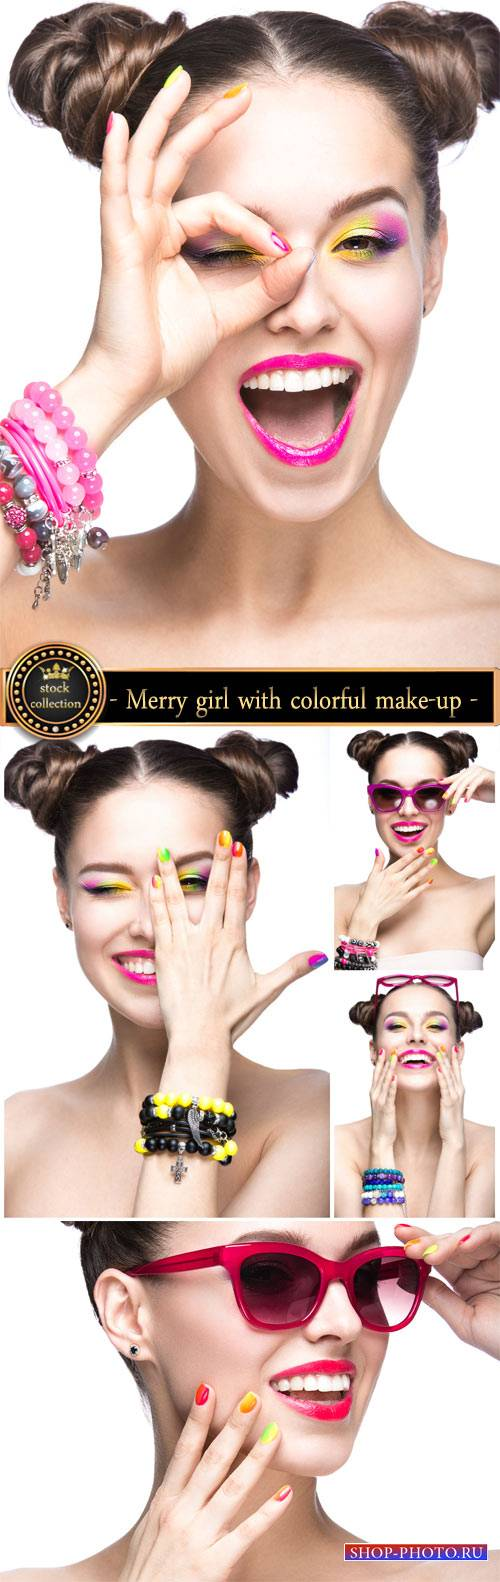 Funny girl with colorful make-up - stock photos